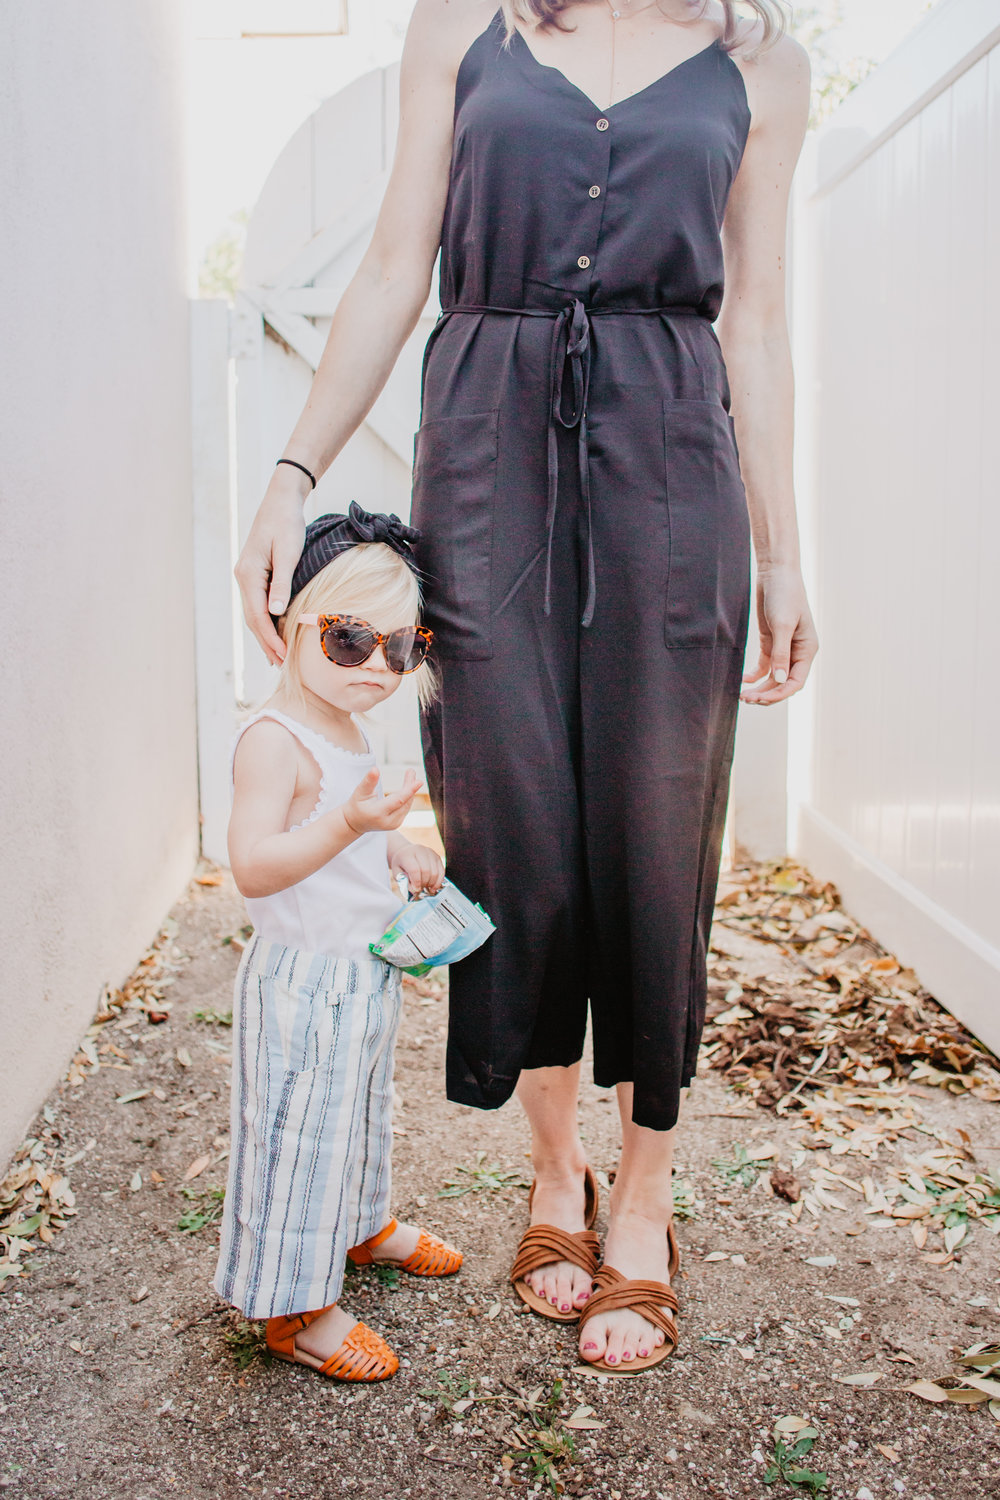 Cute Spring Kids Clothes - Kids Gaucho Pants - Black Women's Romper - The Overwhelmed Mommy